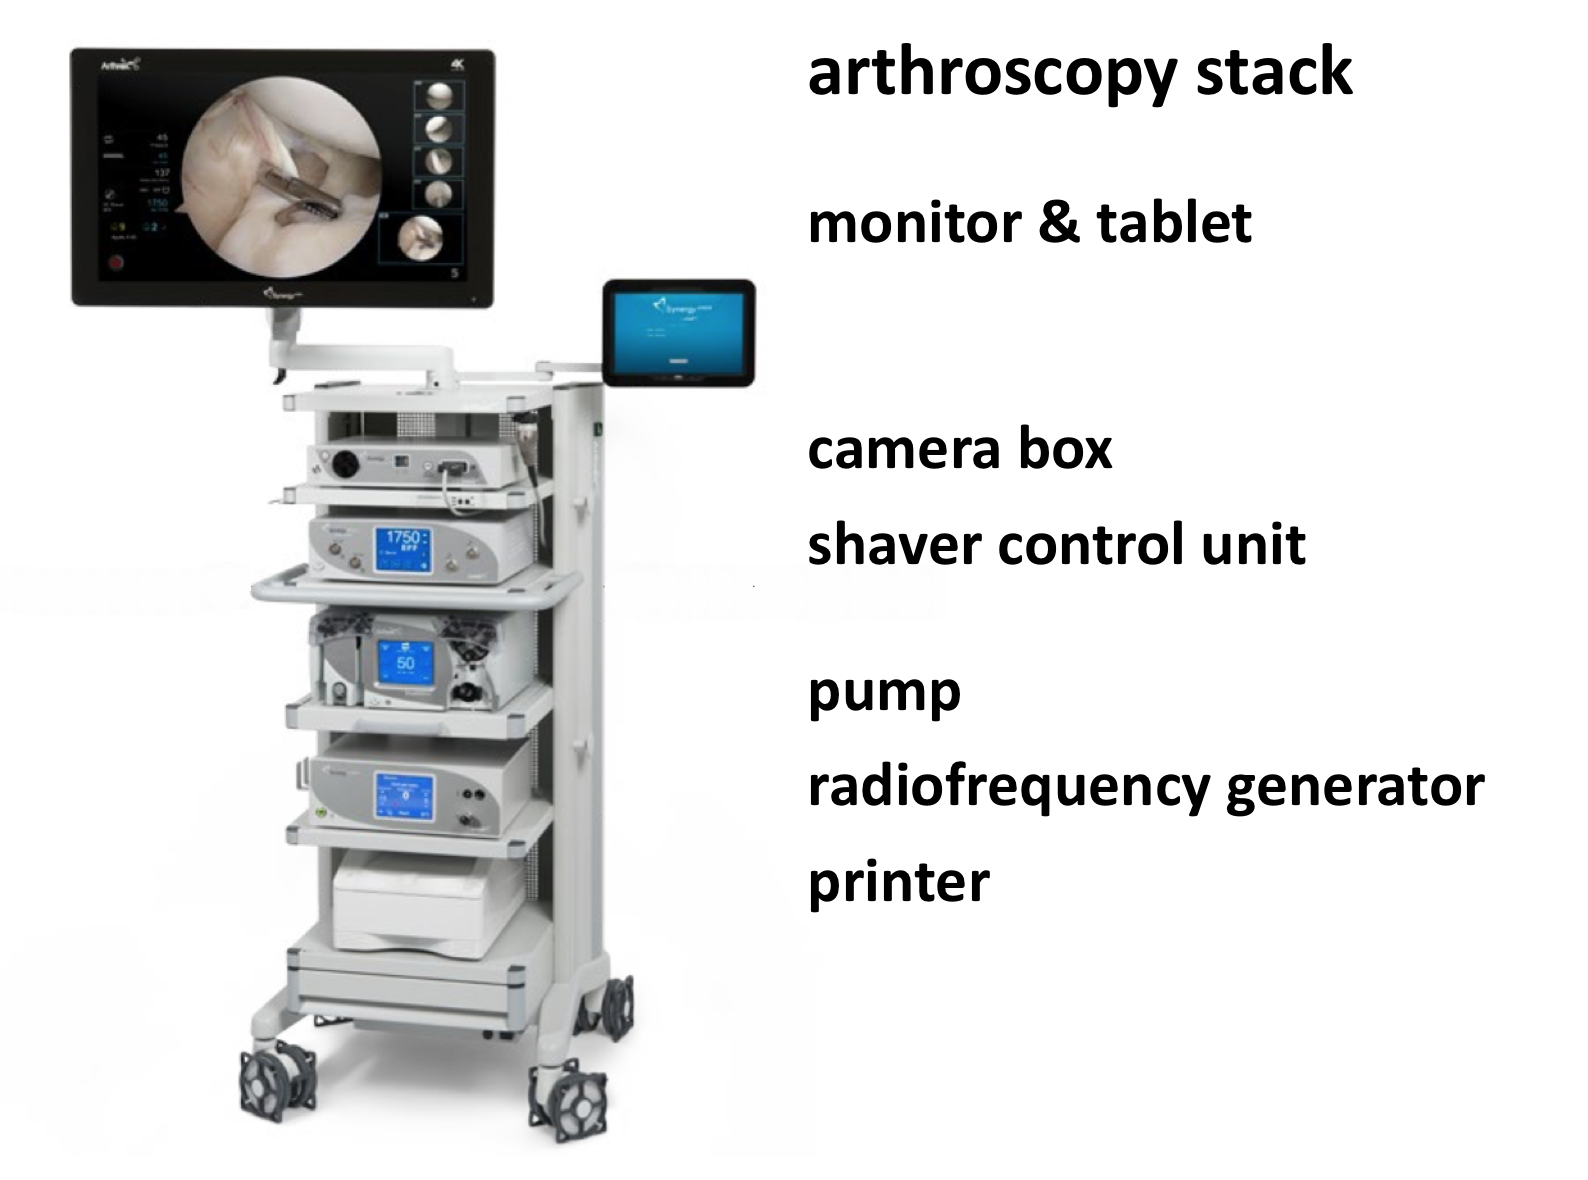 Fig 8. Arthroscopy Stack